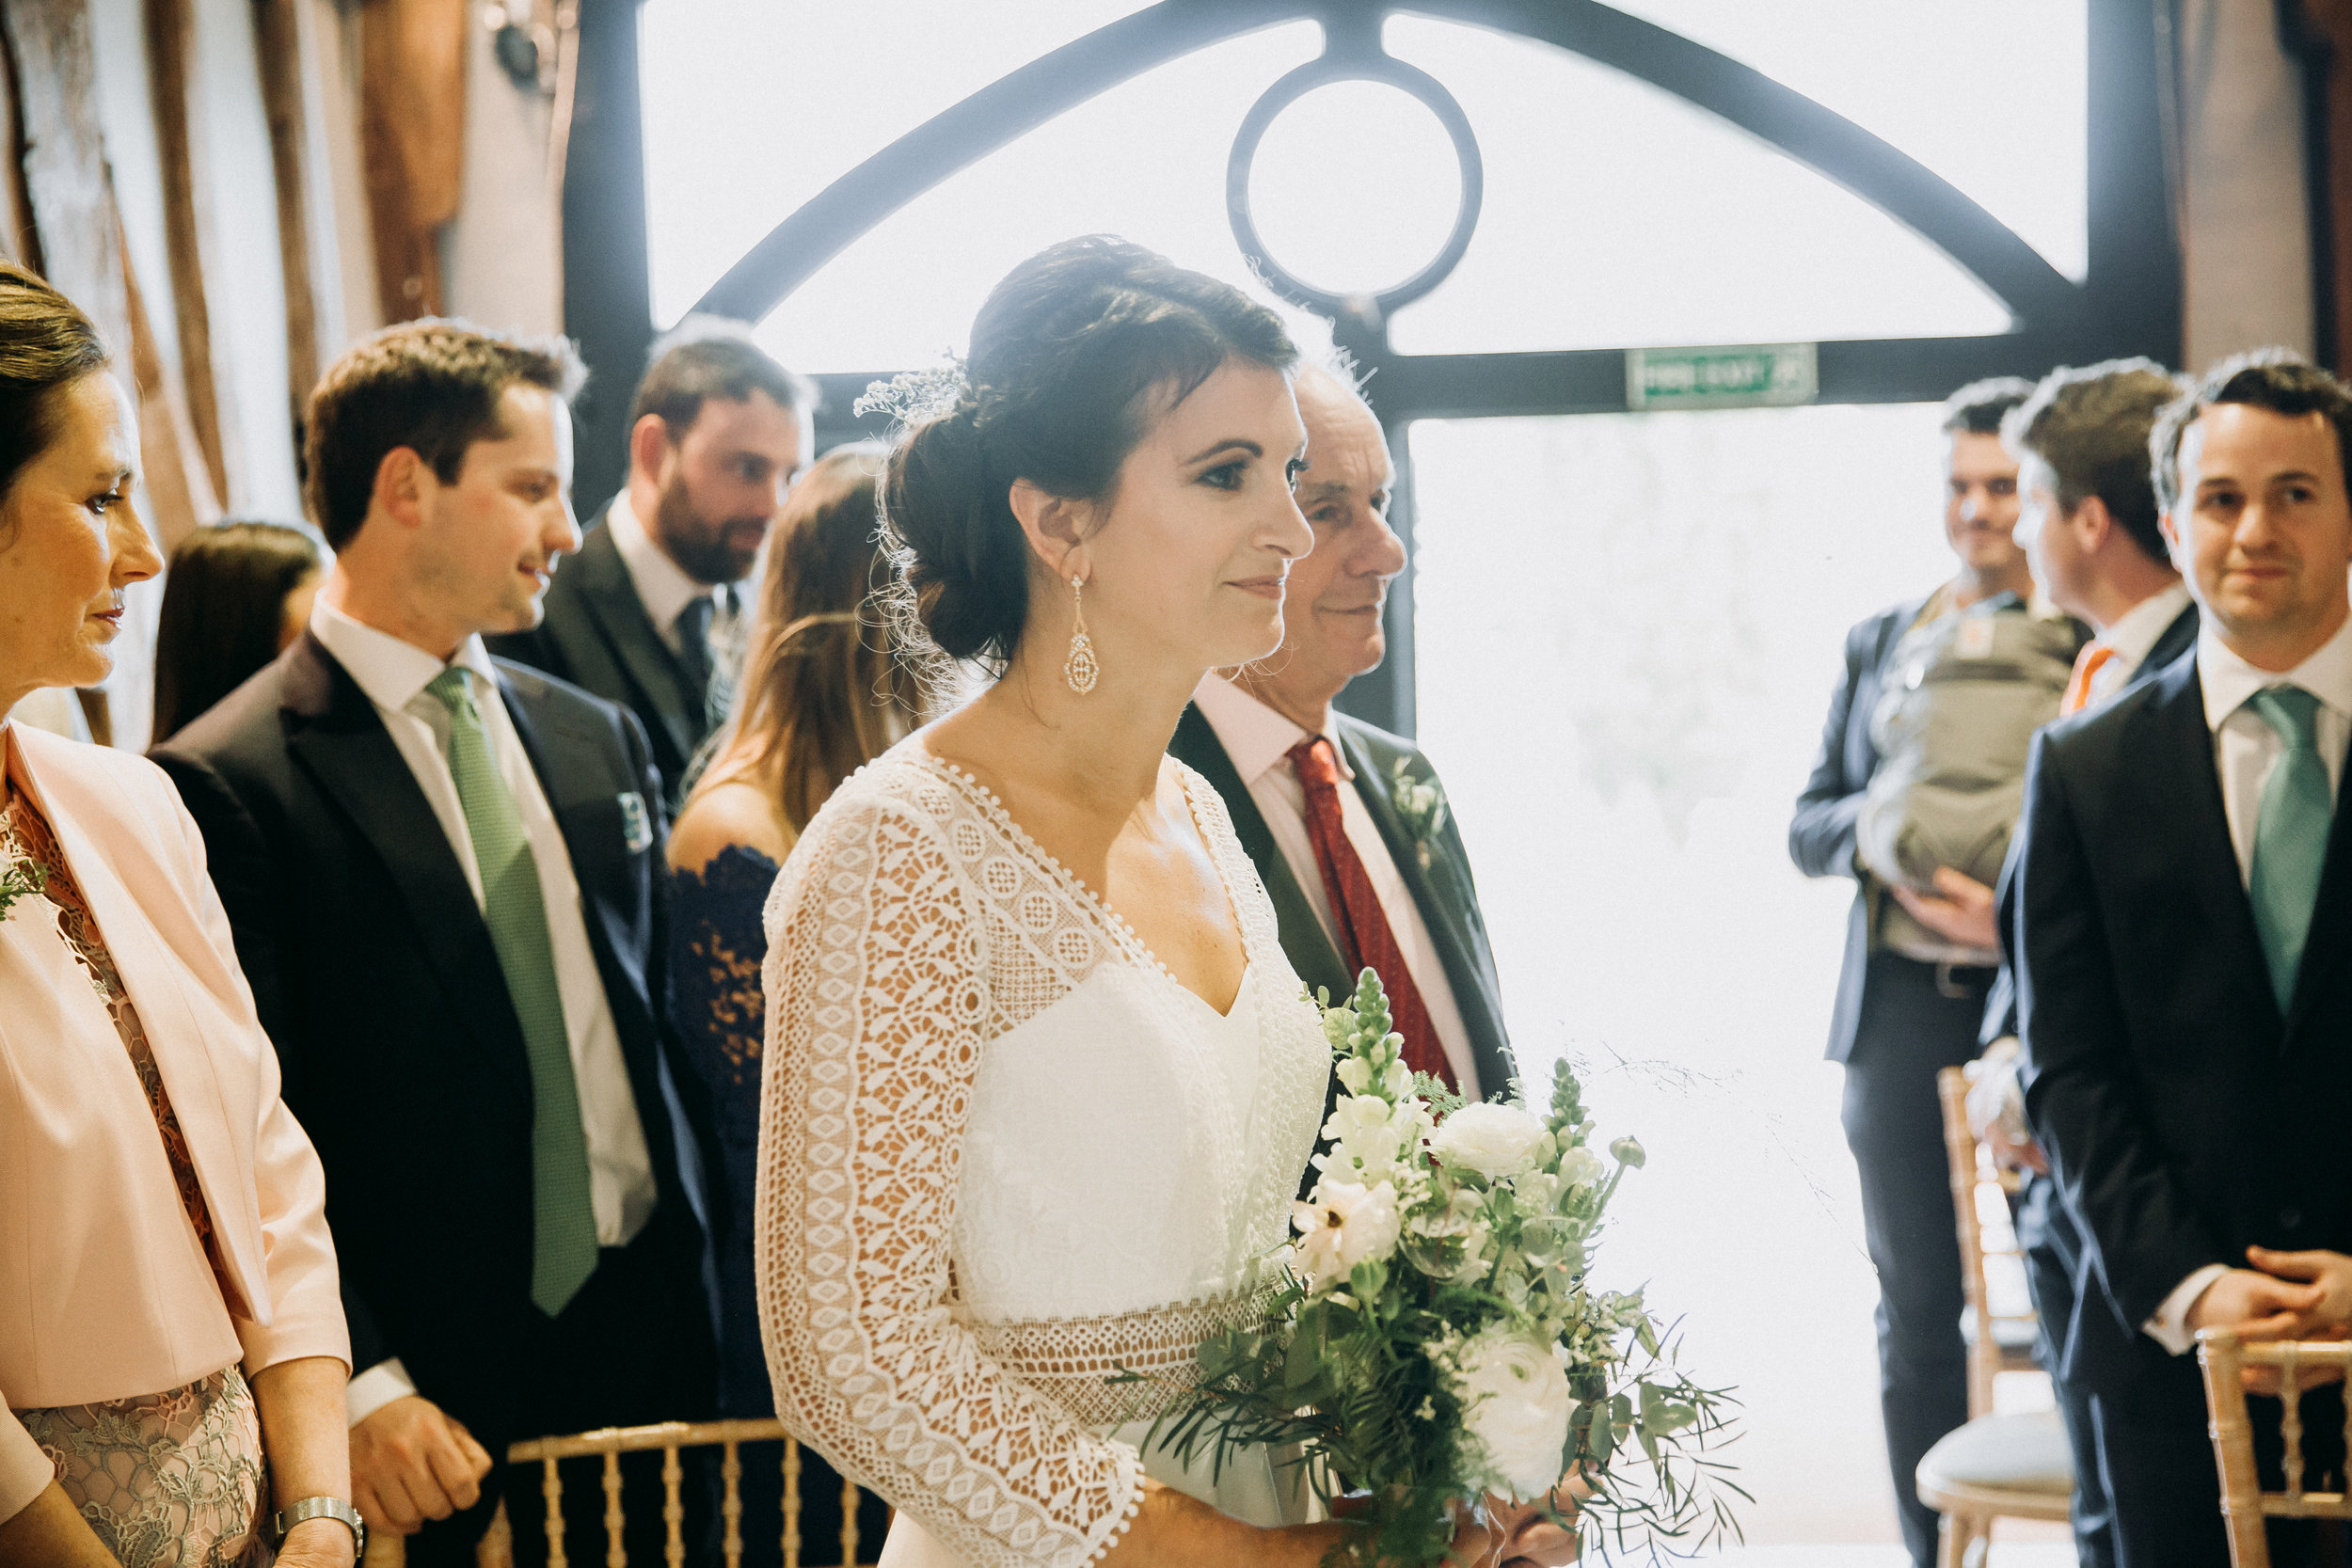 Vanessa waiting for her bride at Old Luxter's Barn at The Chilterns wedding